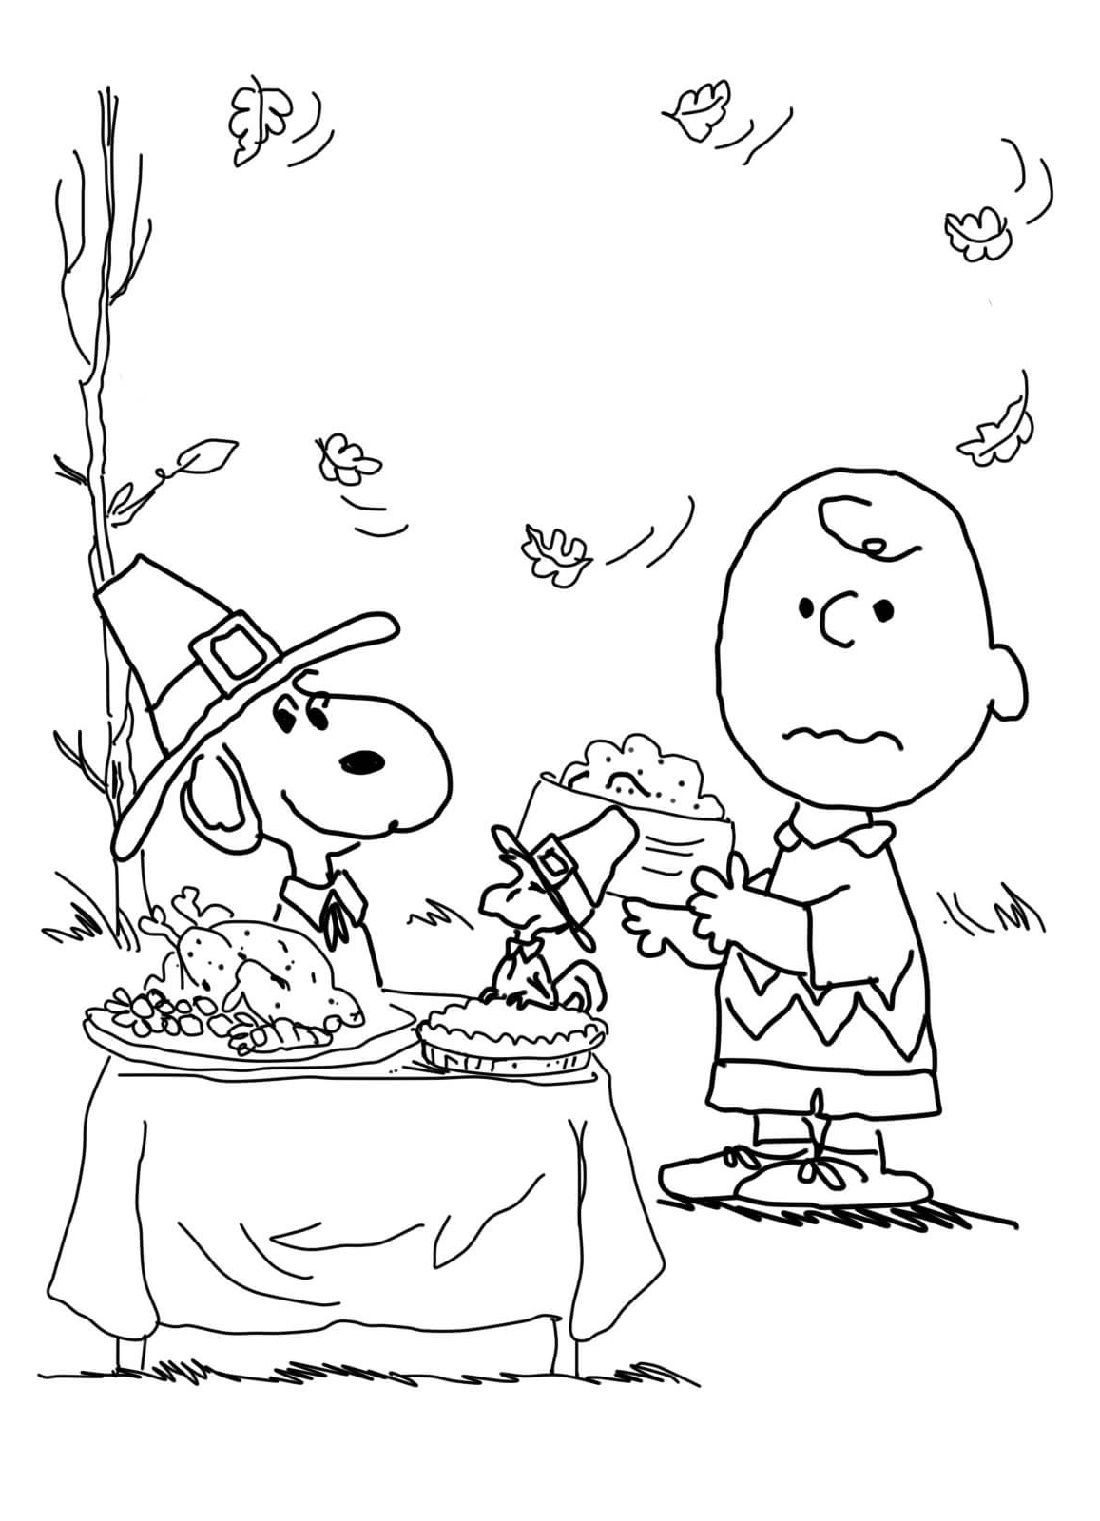 Printable Thanksgiving Coloring Pages With Images